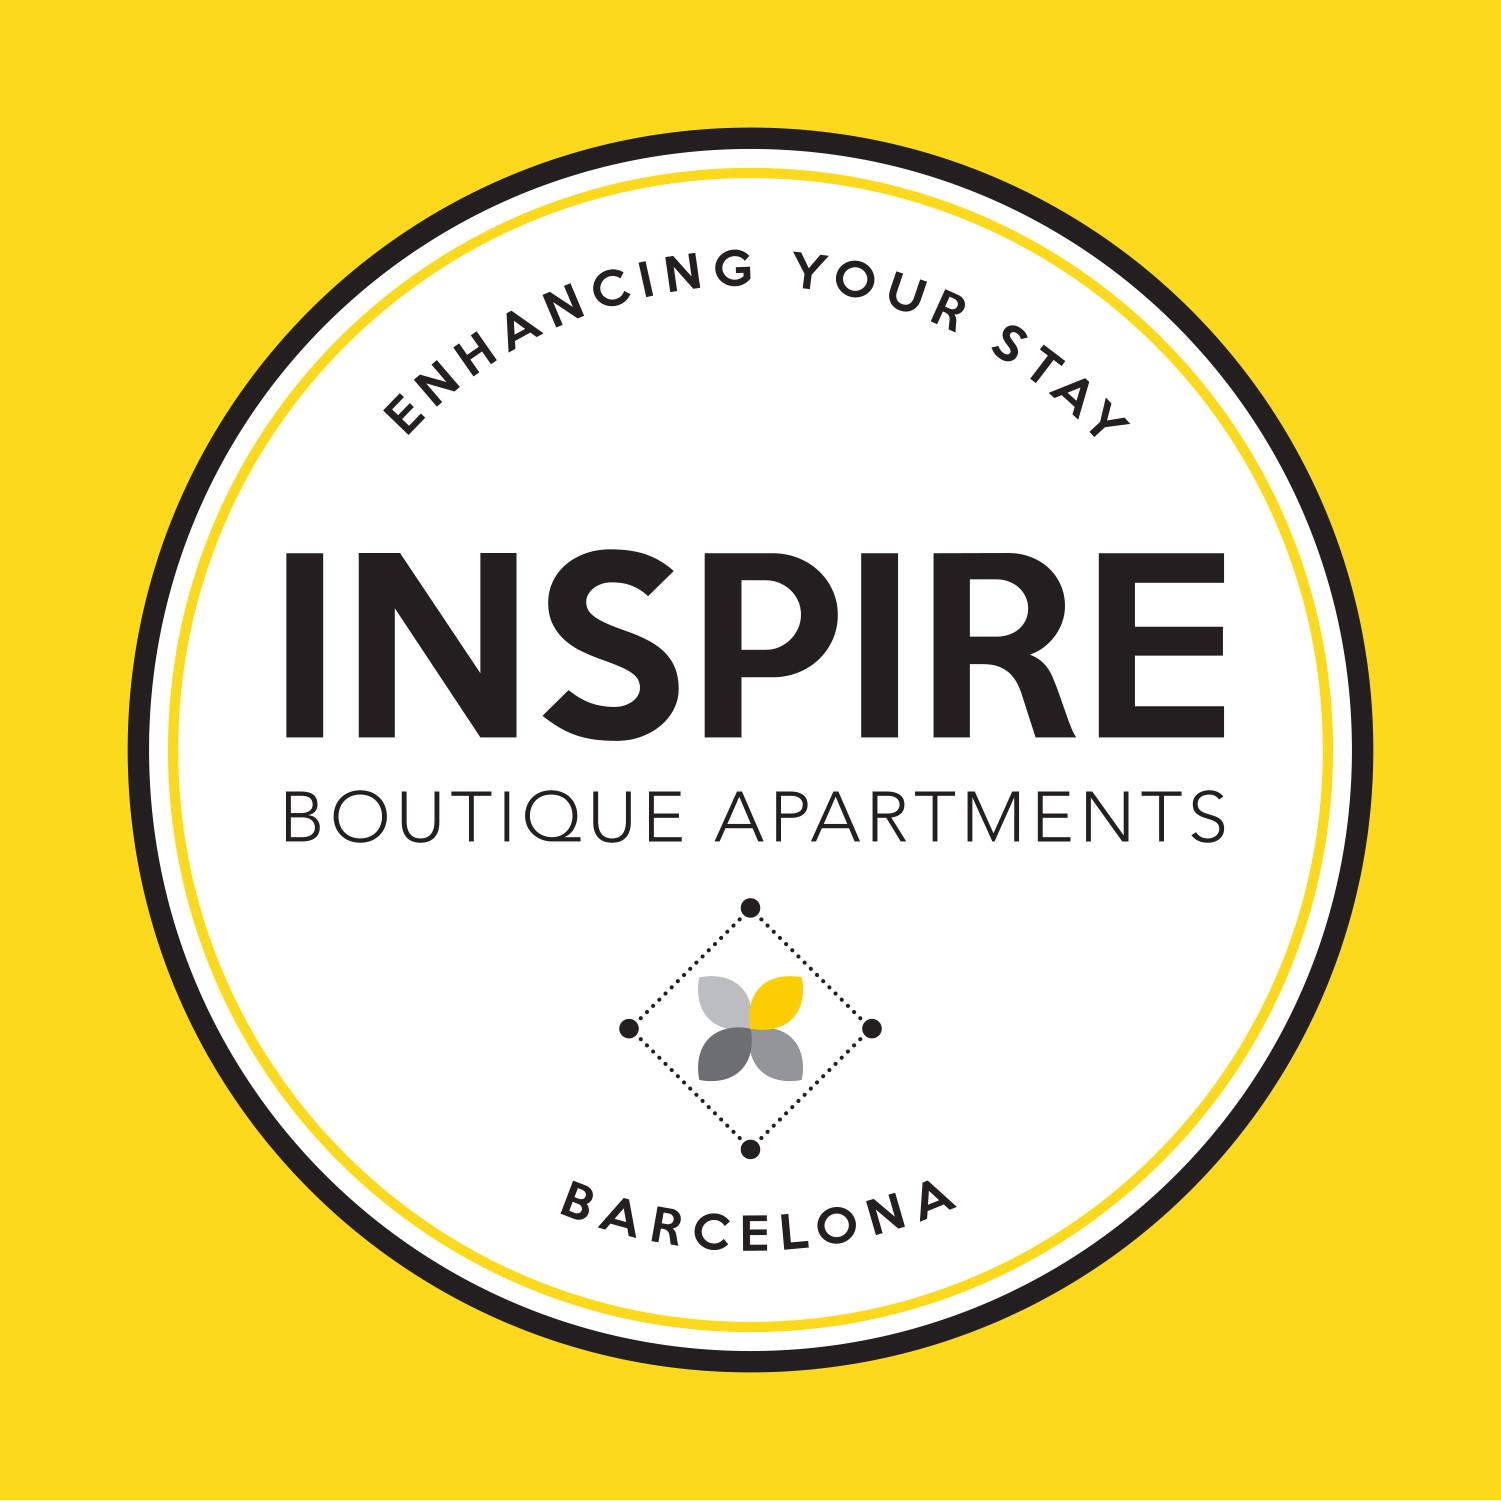 Inspire Boutique Apartments Barcelona